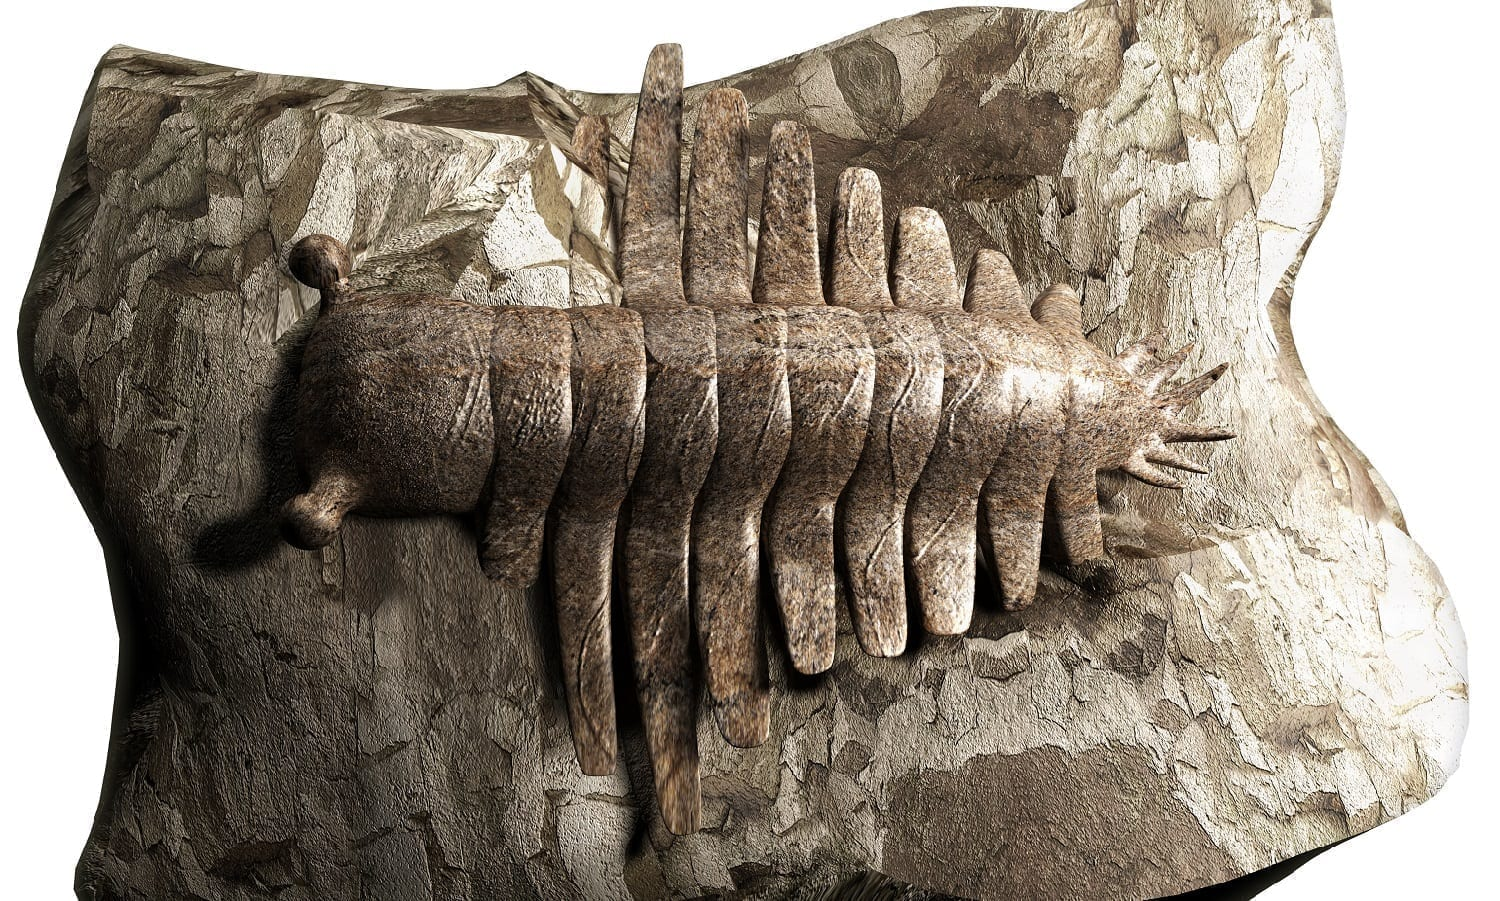 anomalocaris fossil, photo credit: dreamstime_38224357